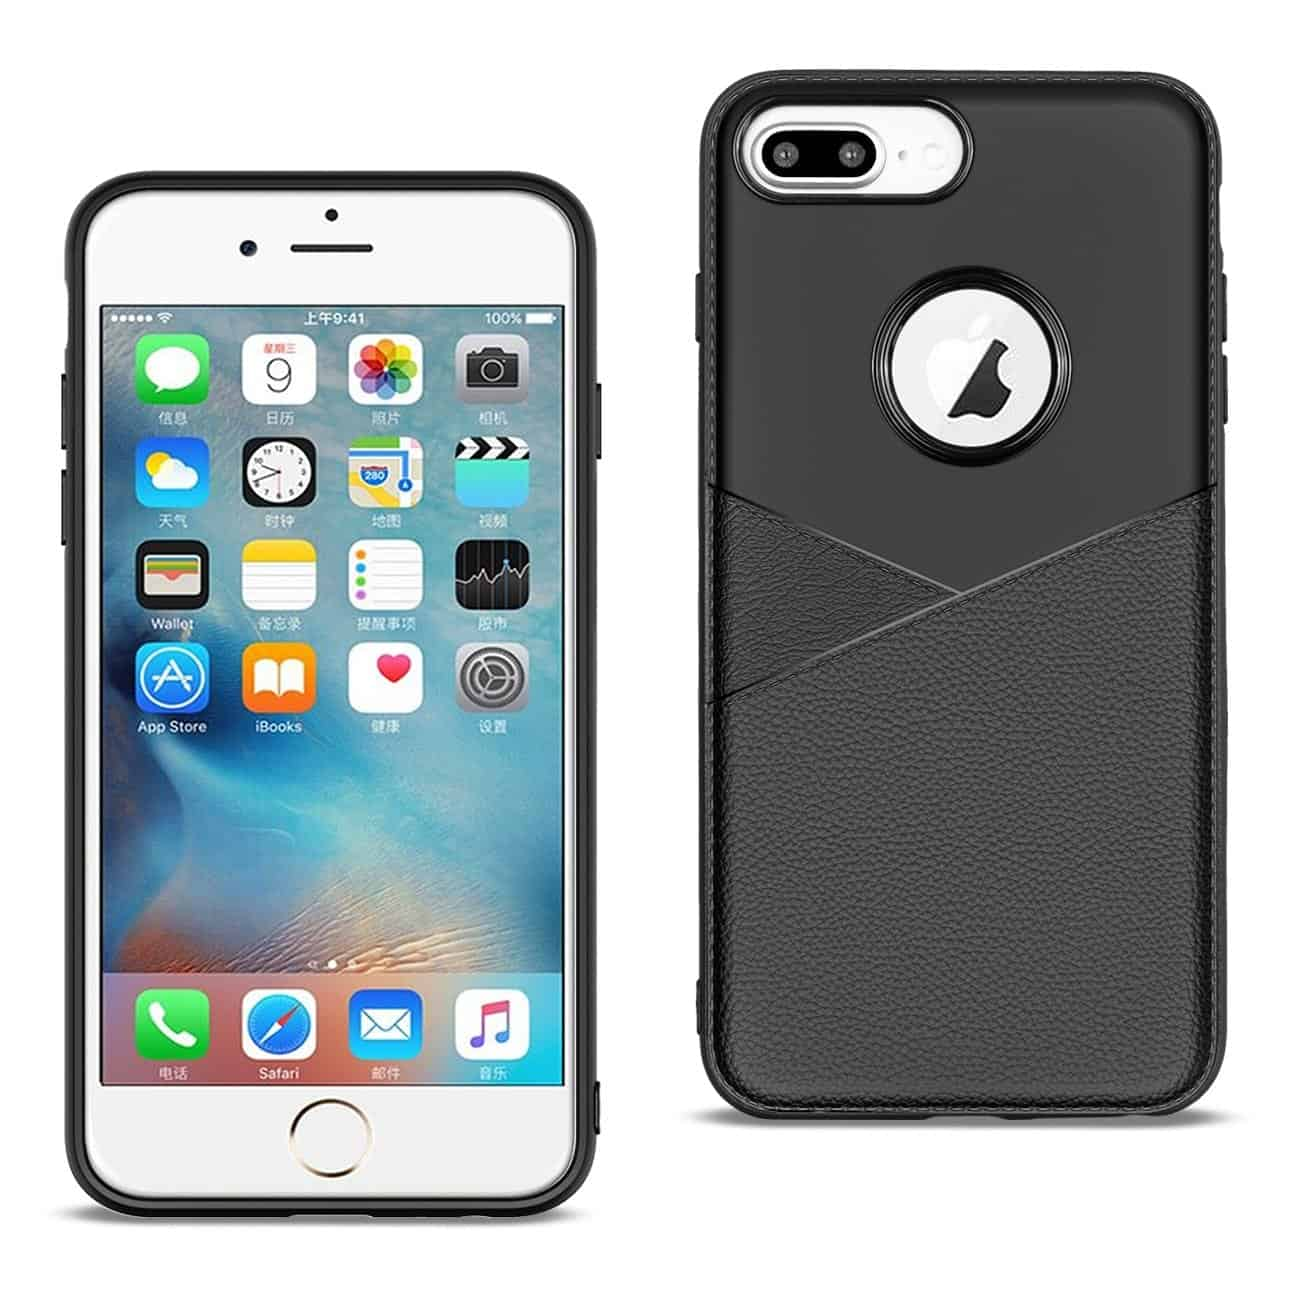 Apple iPhone 8 Plus Good quality phone case in Black